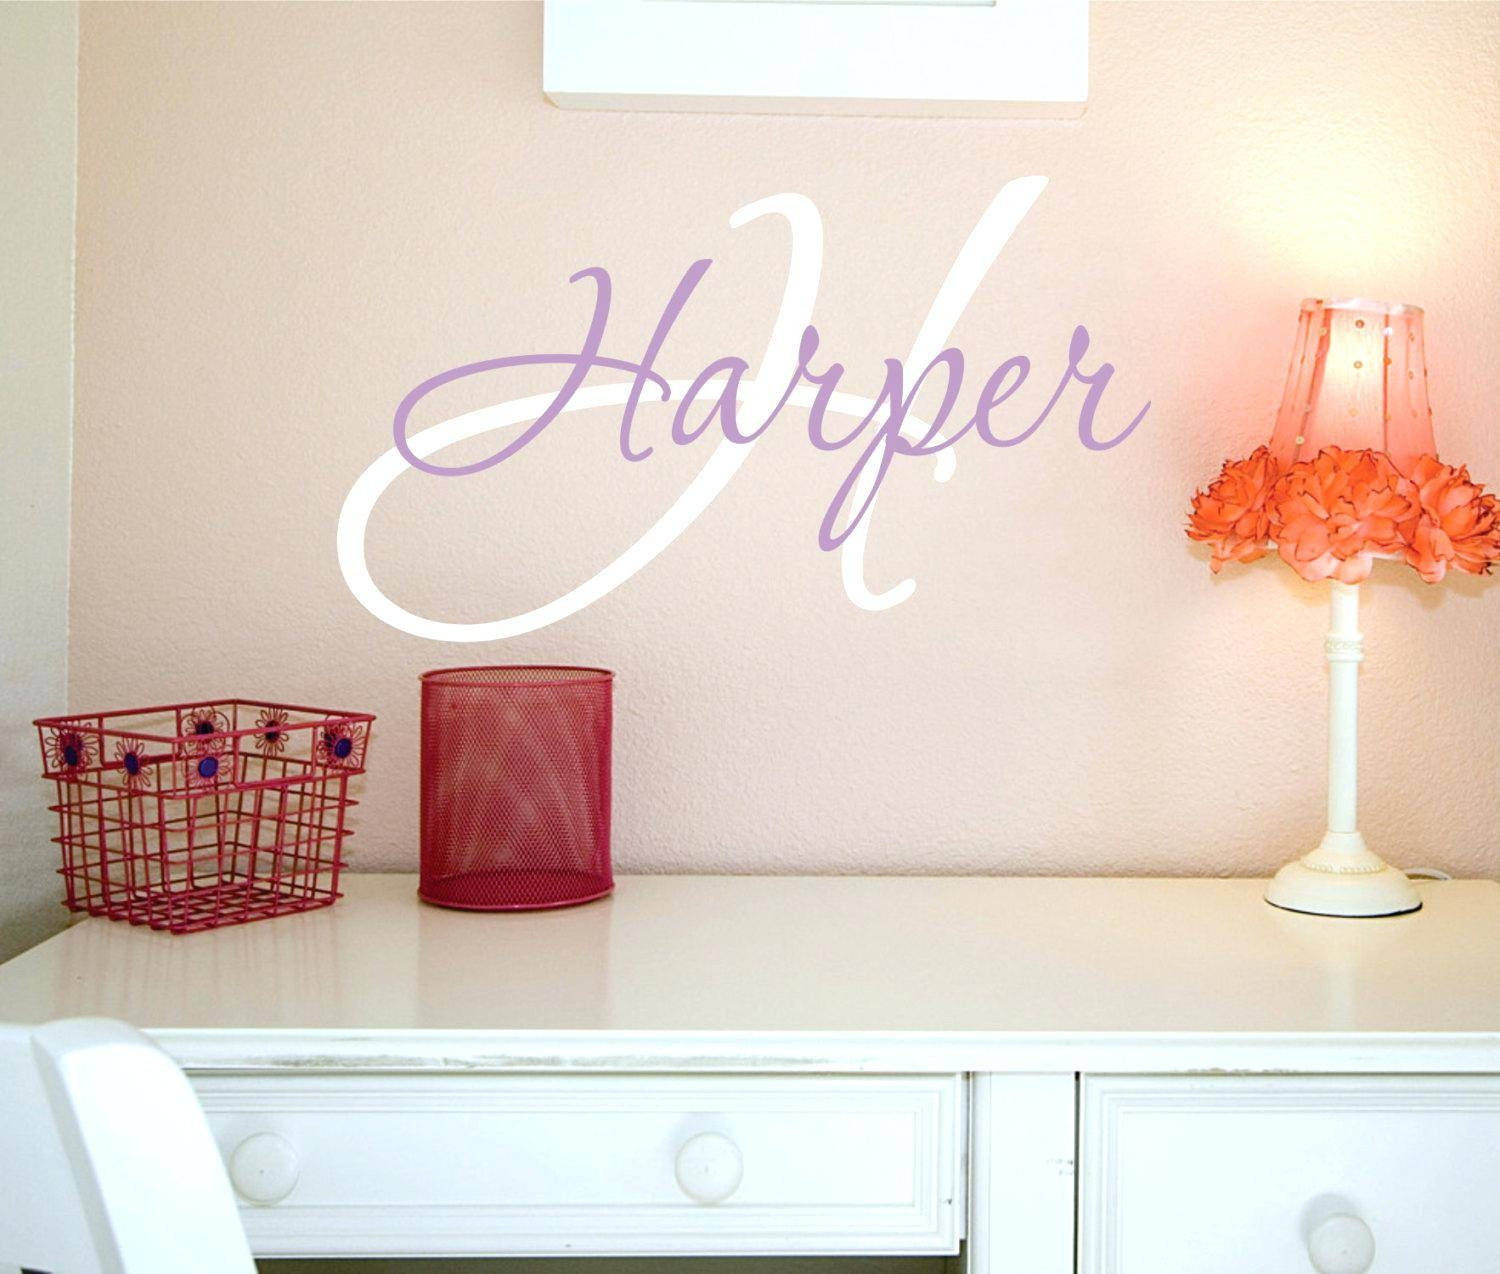 Baby Boy Name Wall Decals Personalized Name Vinyl Wall Art Decor Within Most Current Baby Name Wall Art (View 5 of 25)